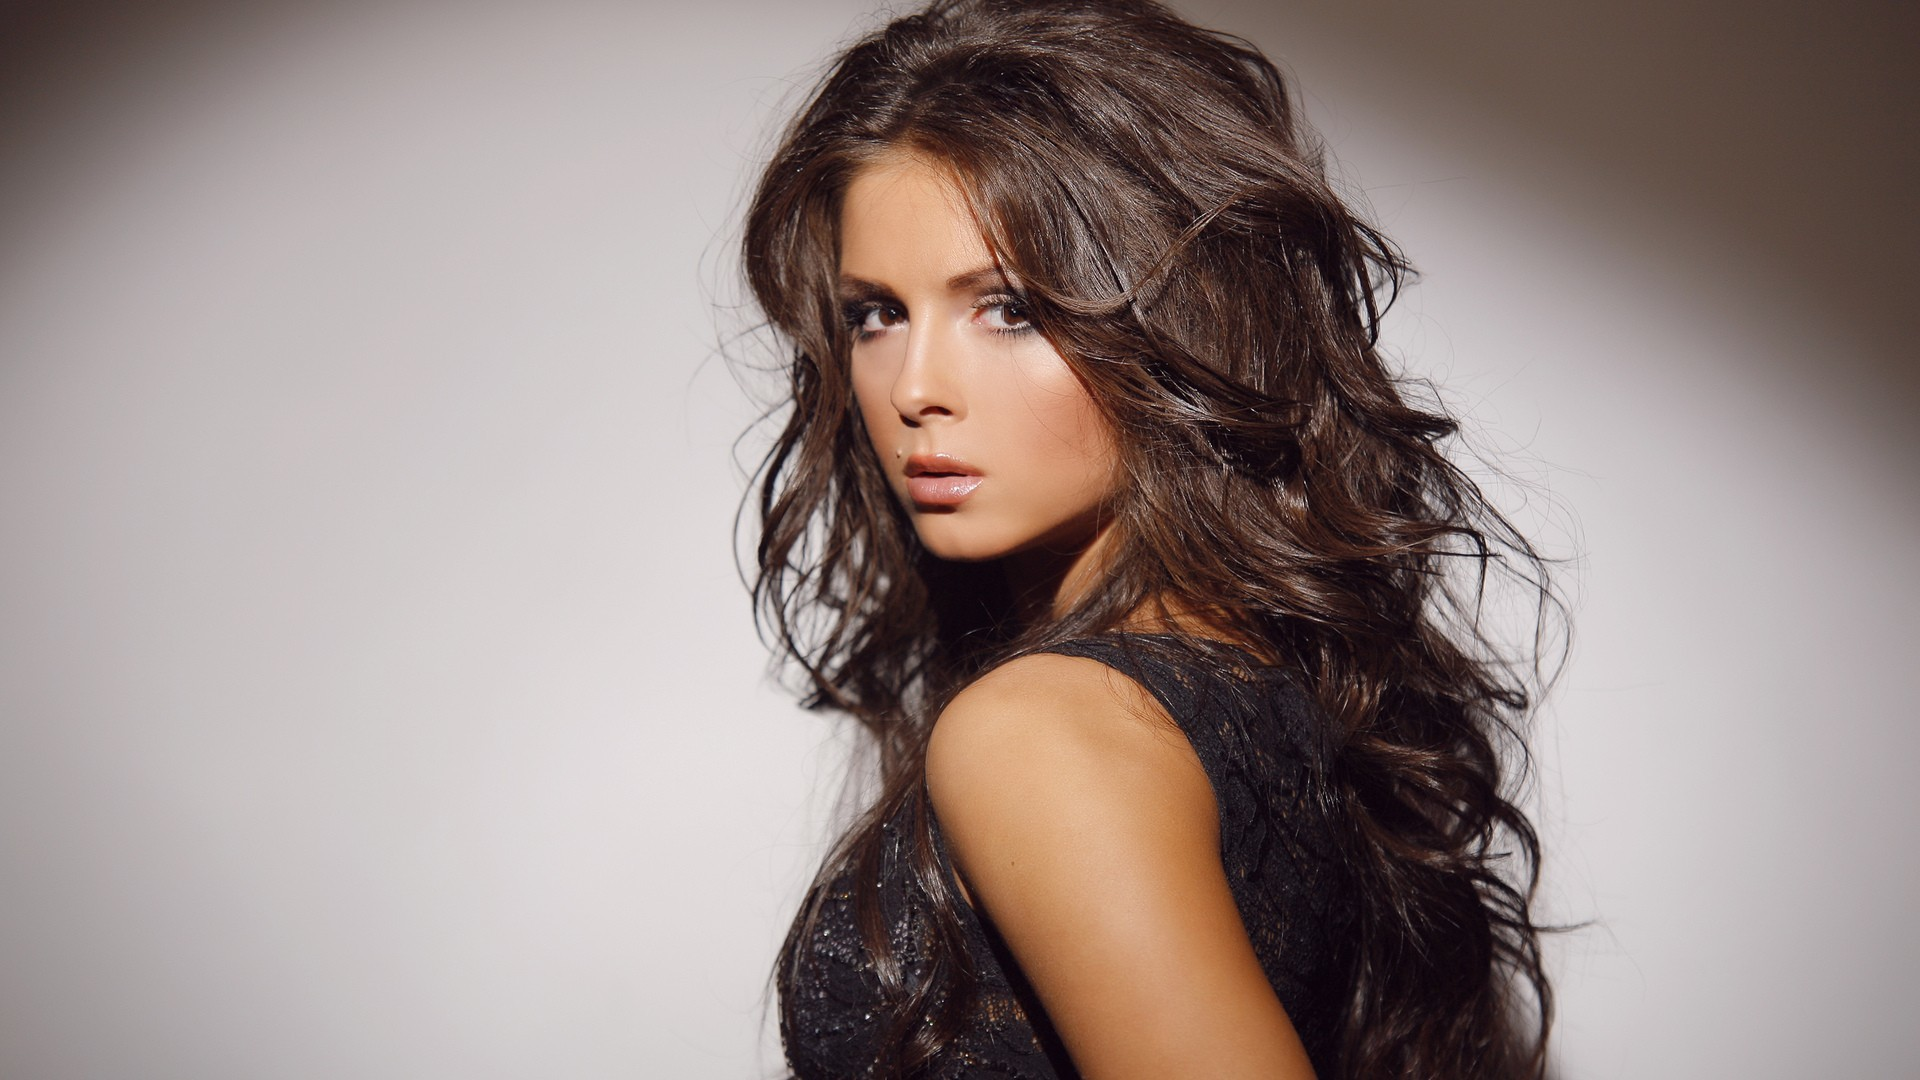 brunettes woman Nusha Nyusha HD Wallpaper